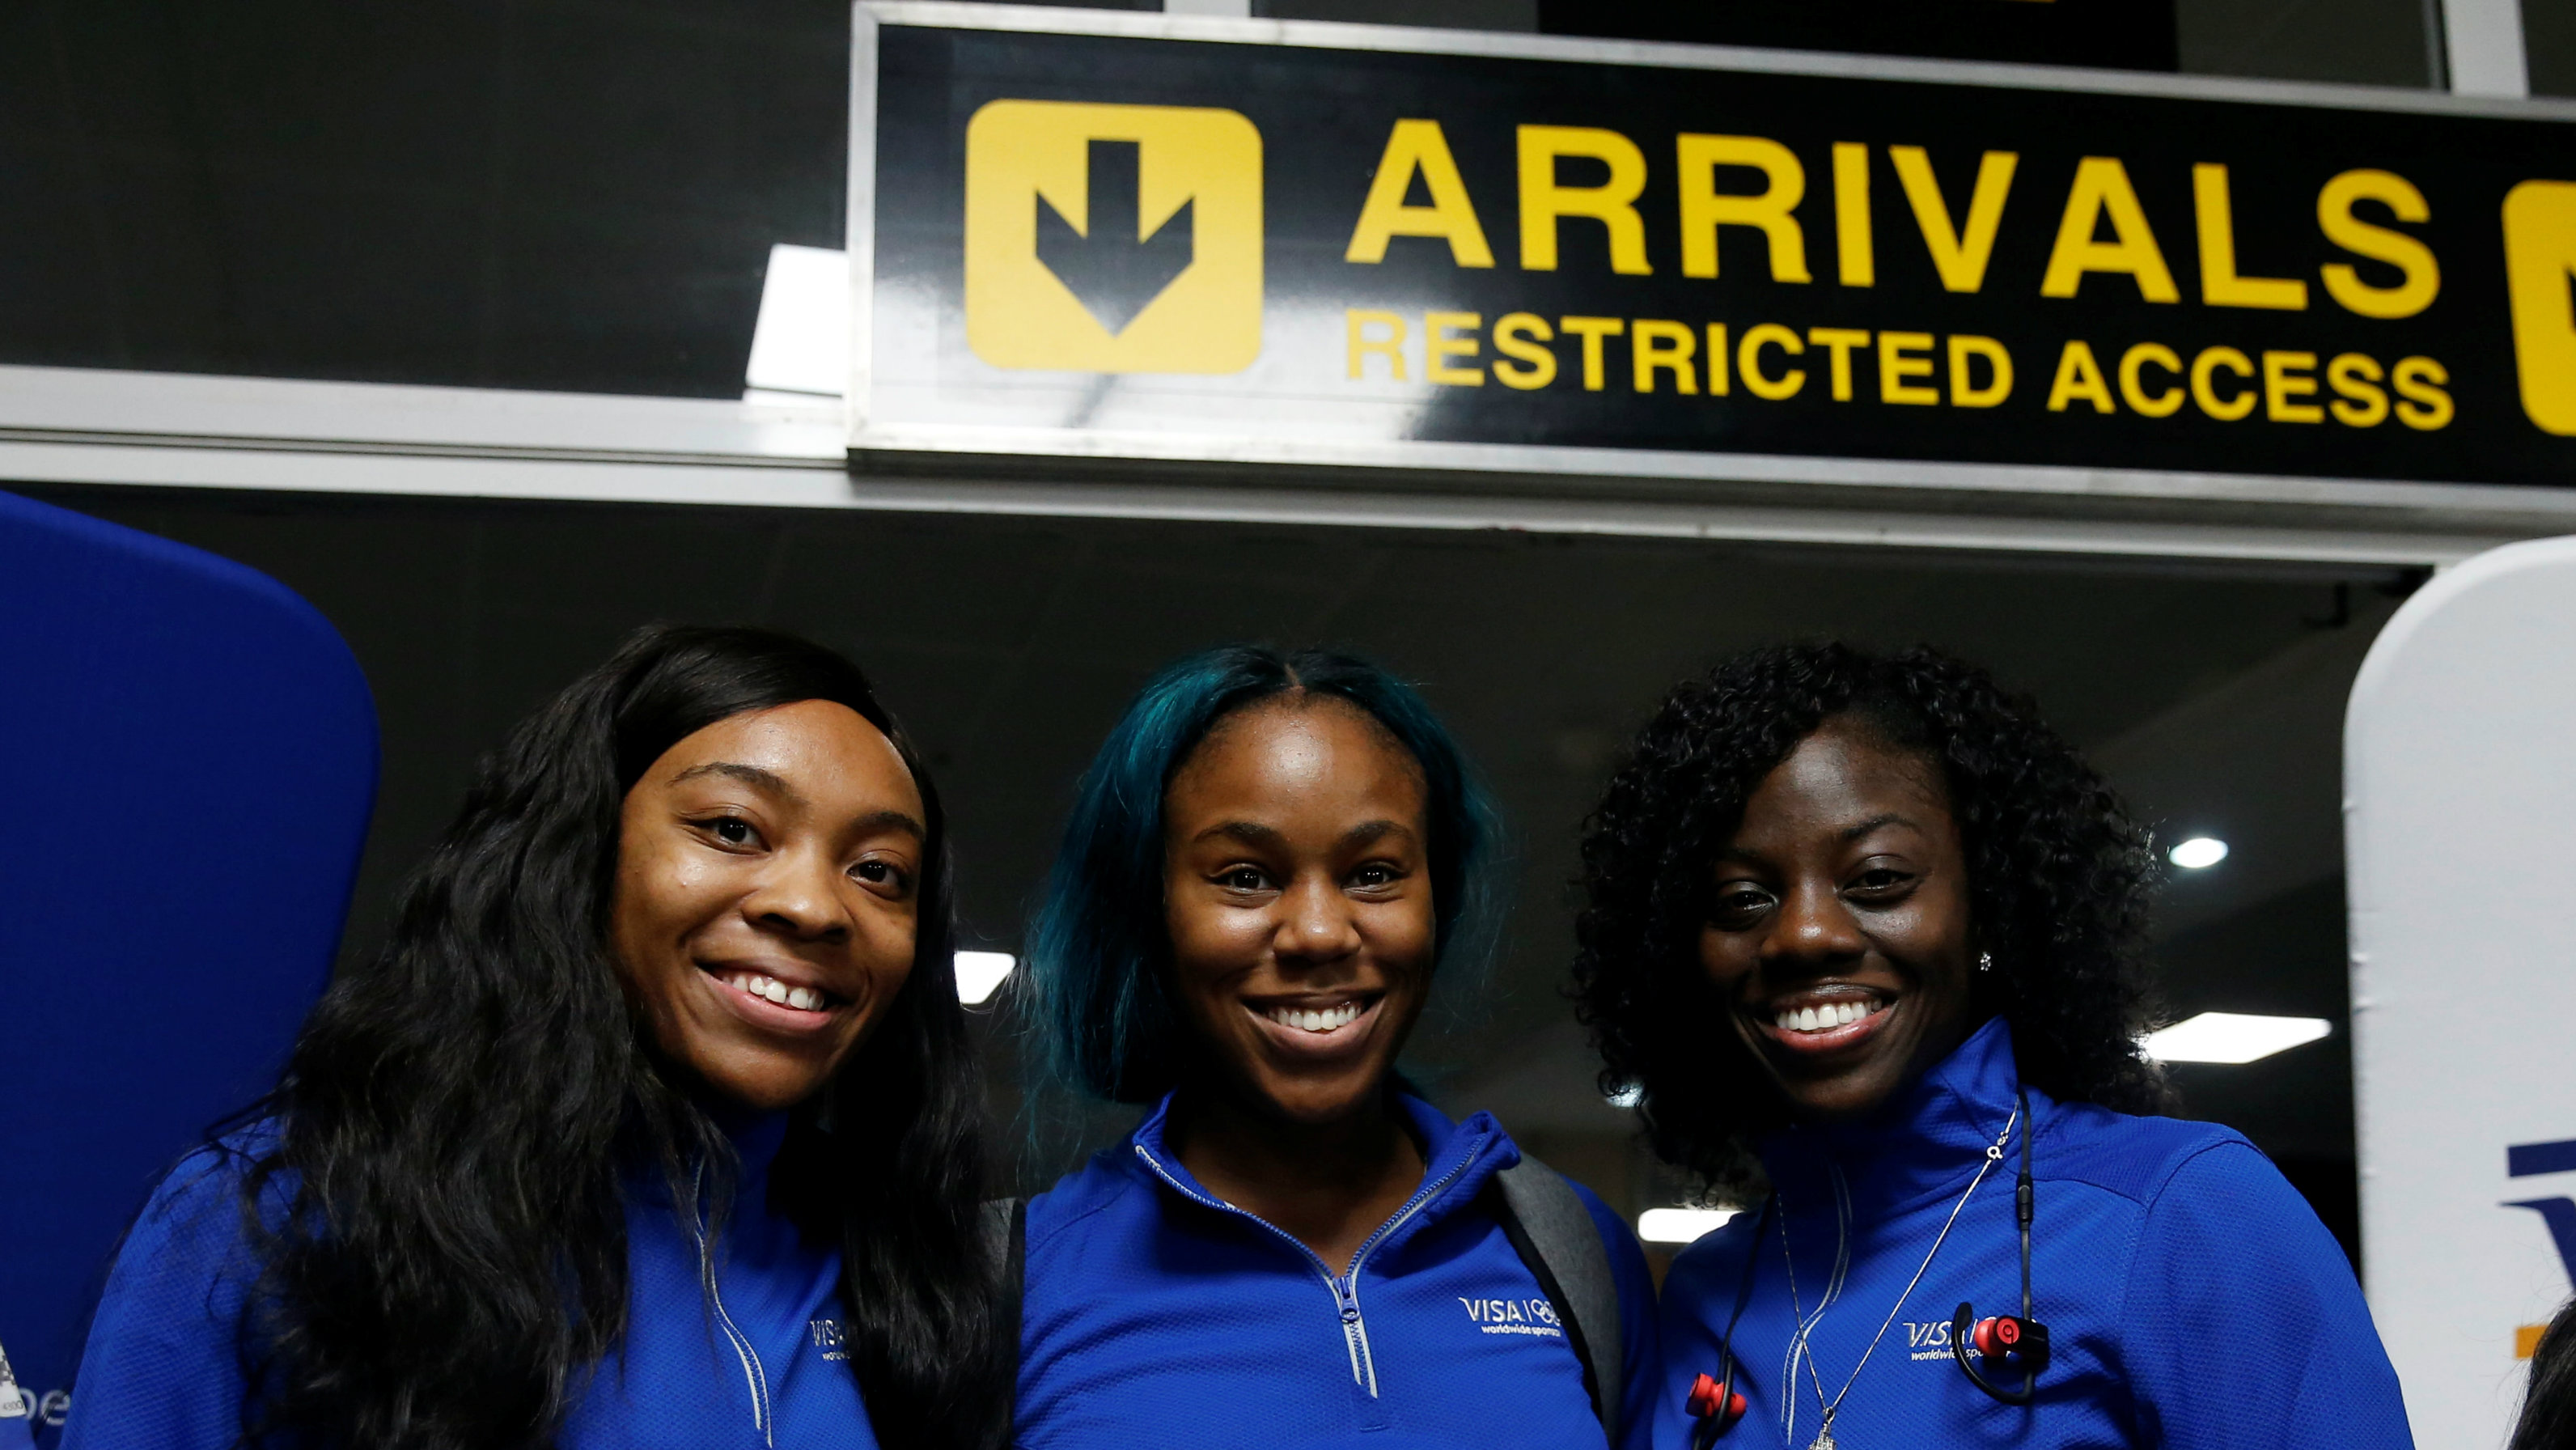 igerian Women's Bobsled Team Ngozi Onwumere, Akuoma Omeoga and Seun Adigun pose with Solabomi Okonkwo, representing VISA, sponsors of the team, upon their arrival in Lagos, Nigeria, as part of preparations ahead of the 2018 Pyeongchang Winter Olympic Games, February 1, 2018.